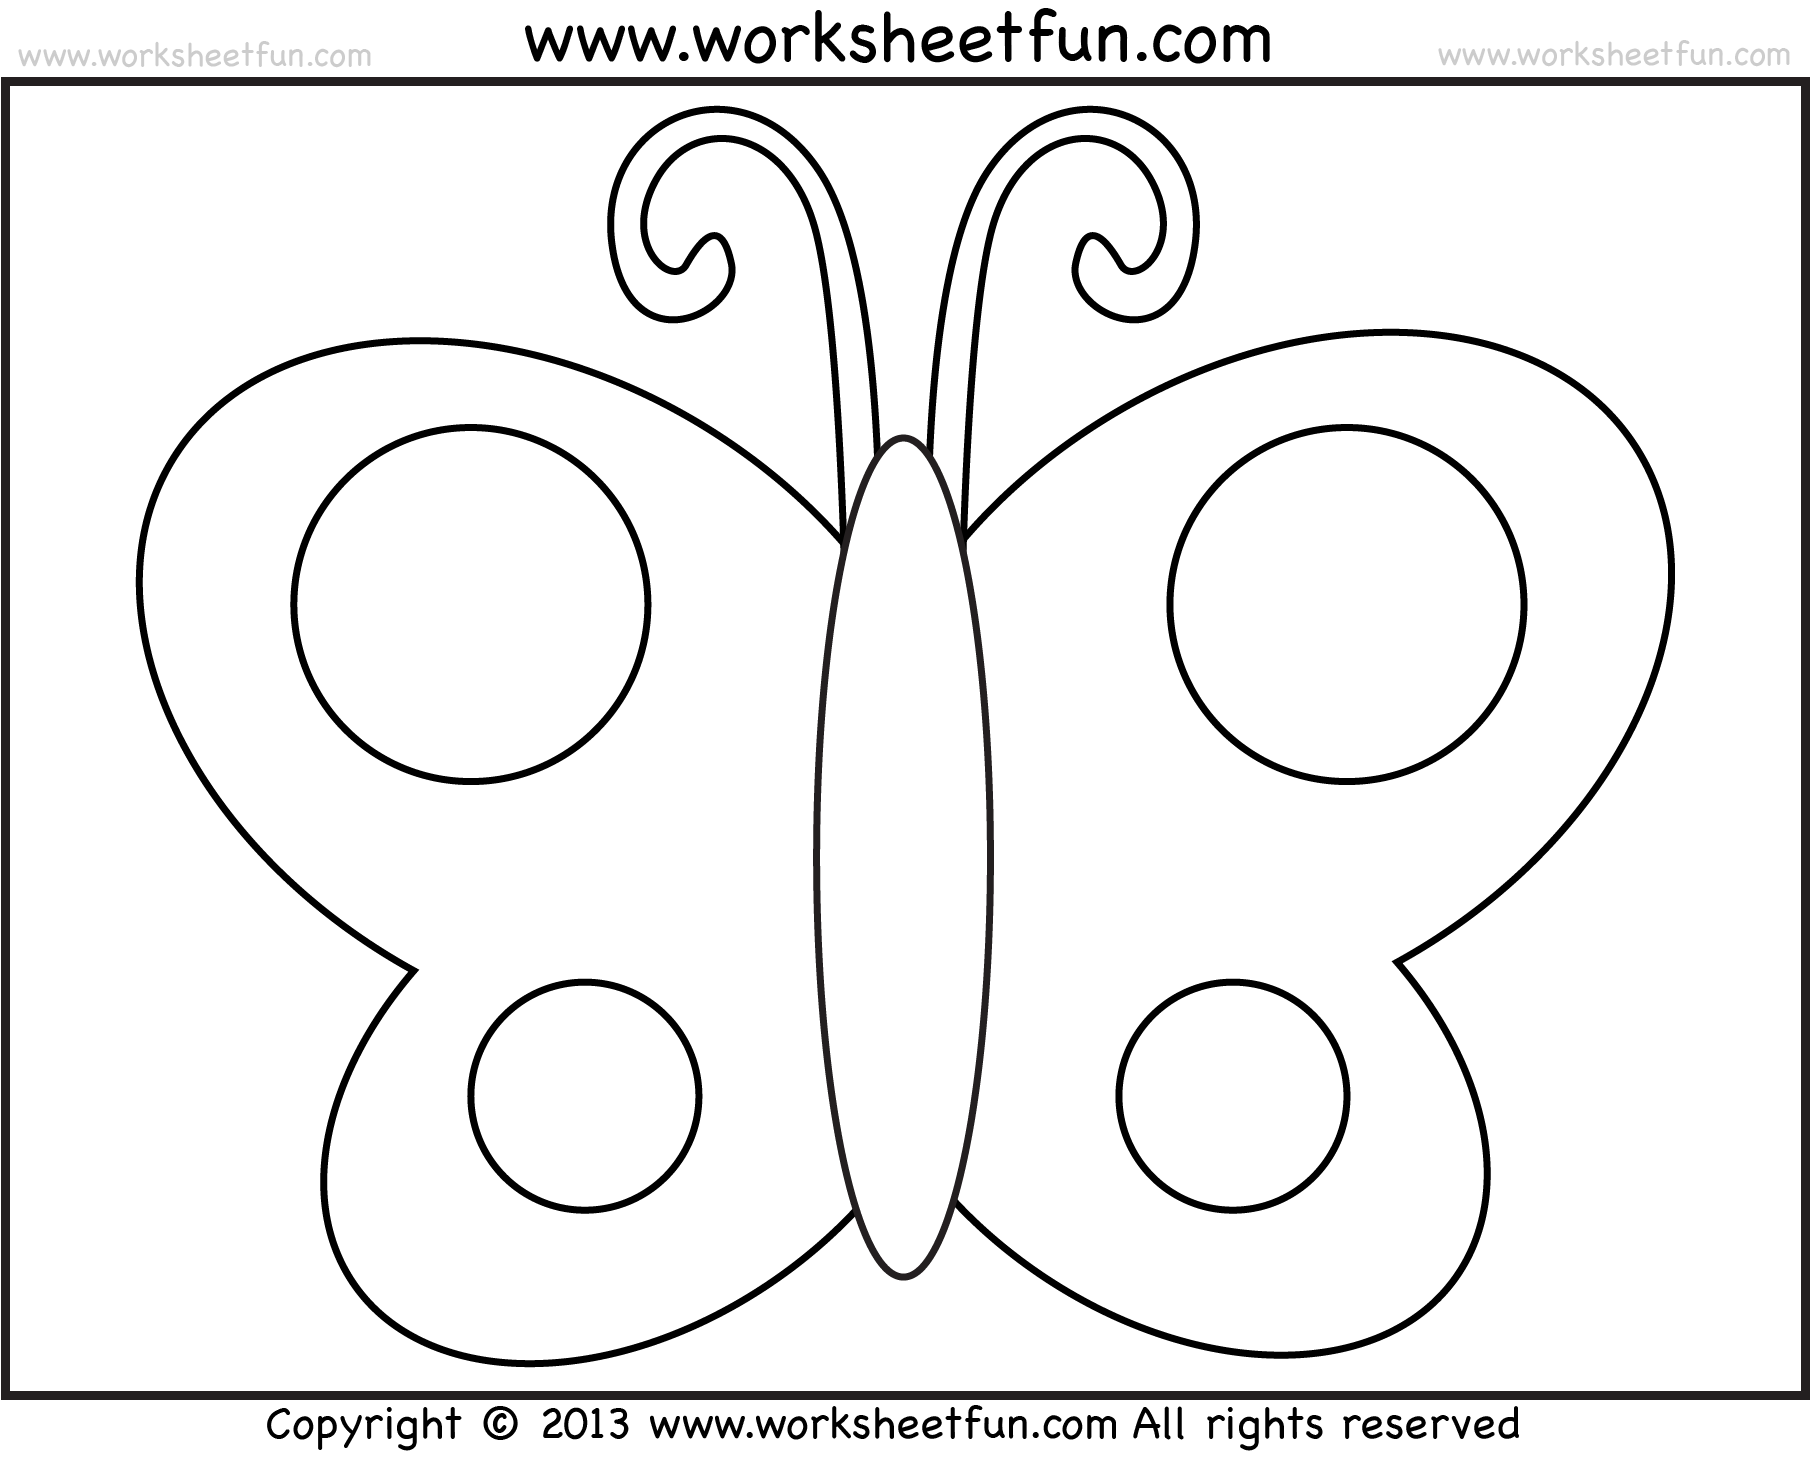 Butterfly Tracing And Coloring 4 Preschool Worksheets Free Printable Worksheets Worksheetfun